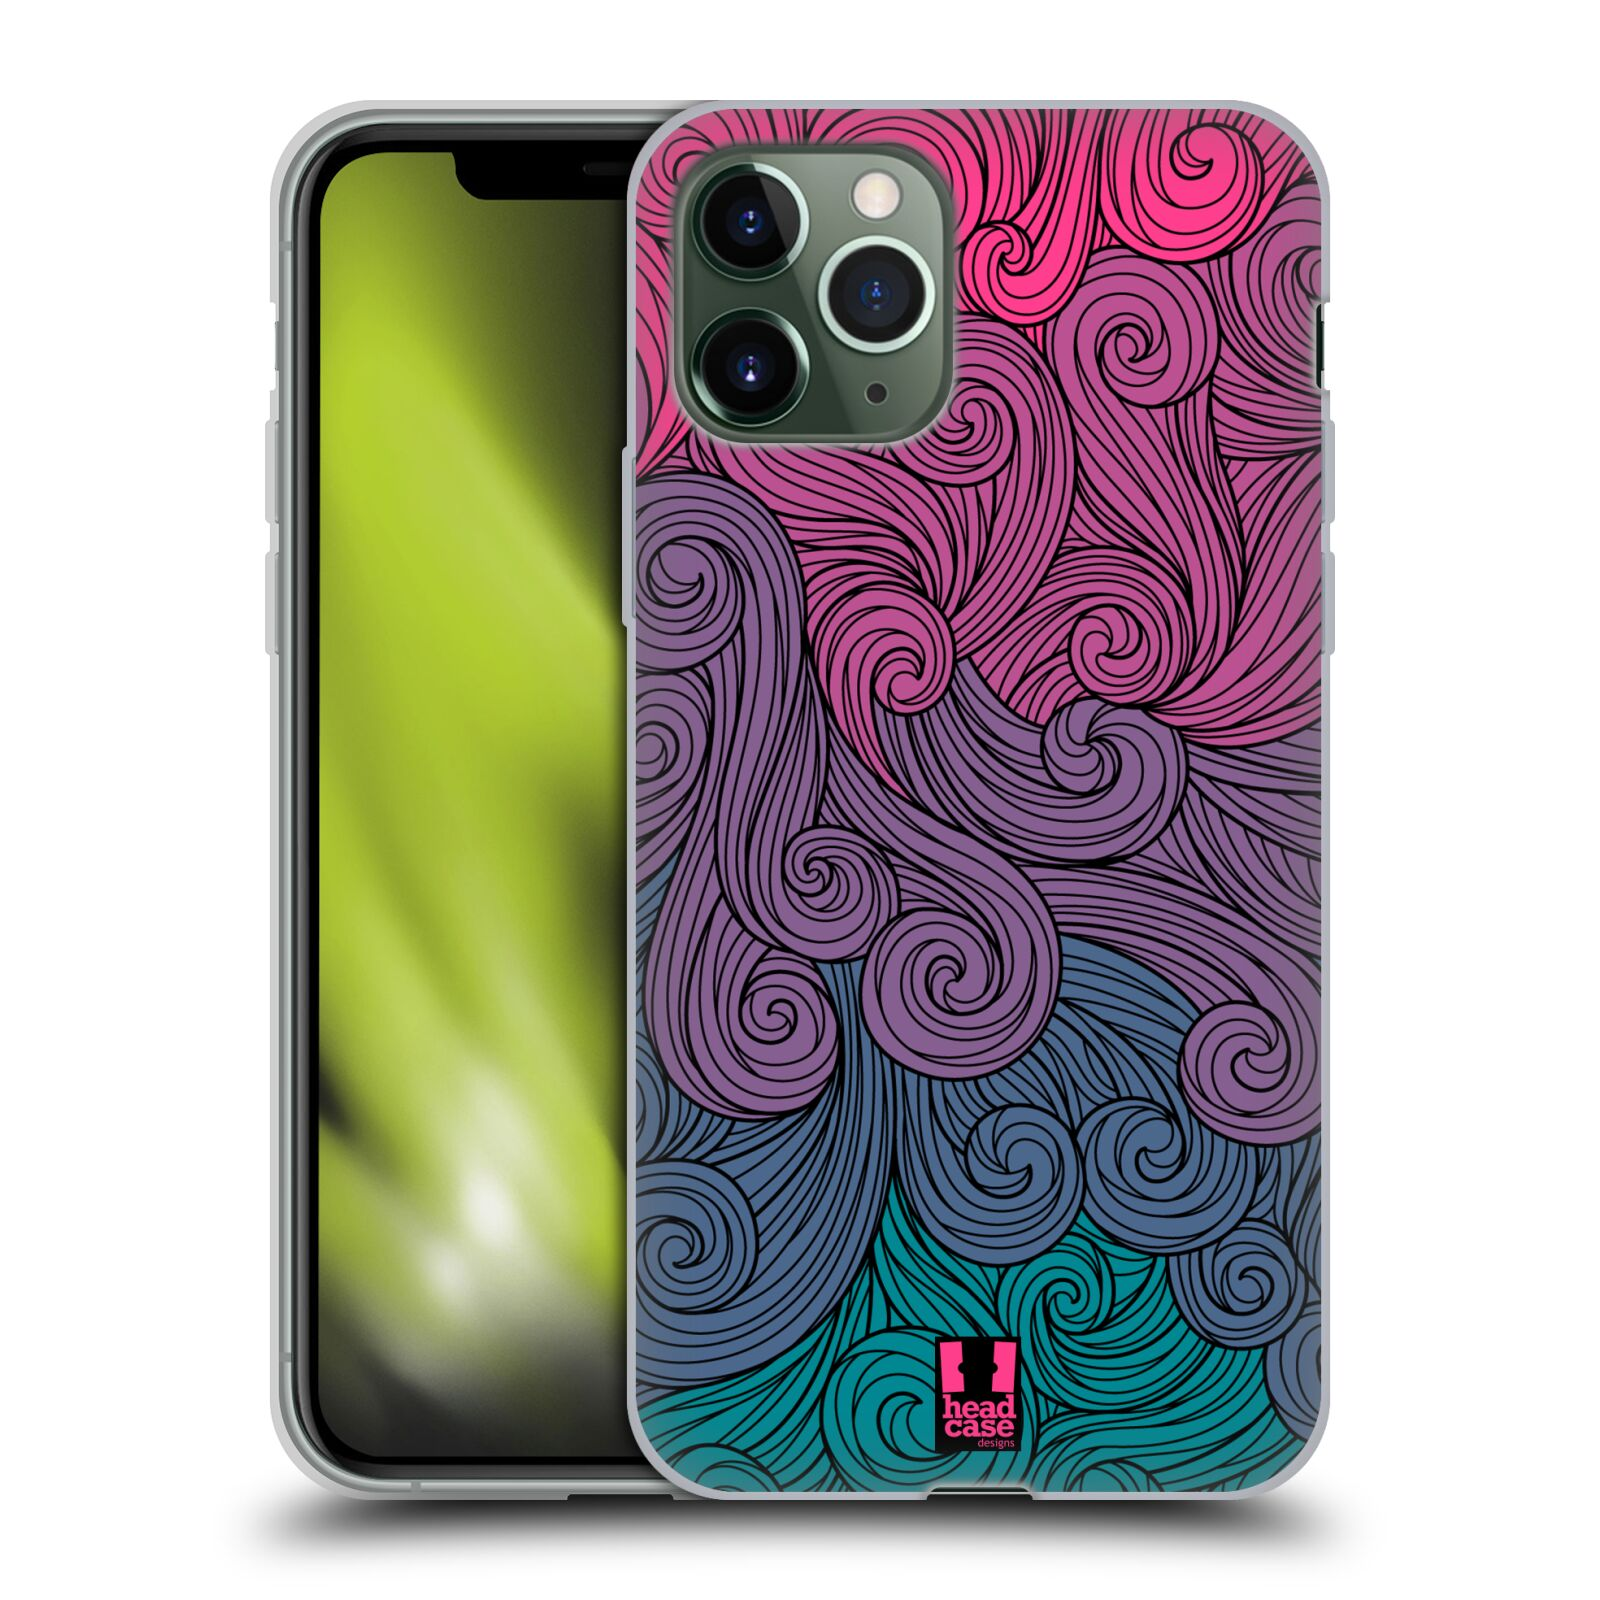 obal iphone 5s alza | Silikonové pouzdro na mobil Apple iPhone 11 Pro - Head Case - Swirls Hot Pink